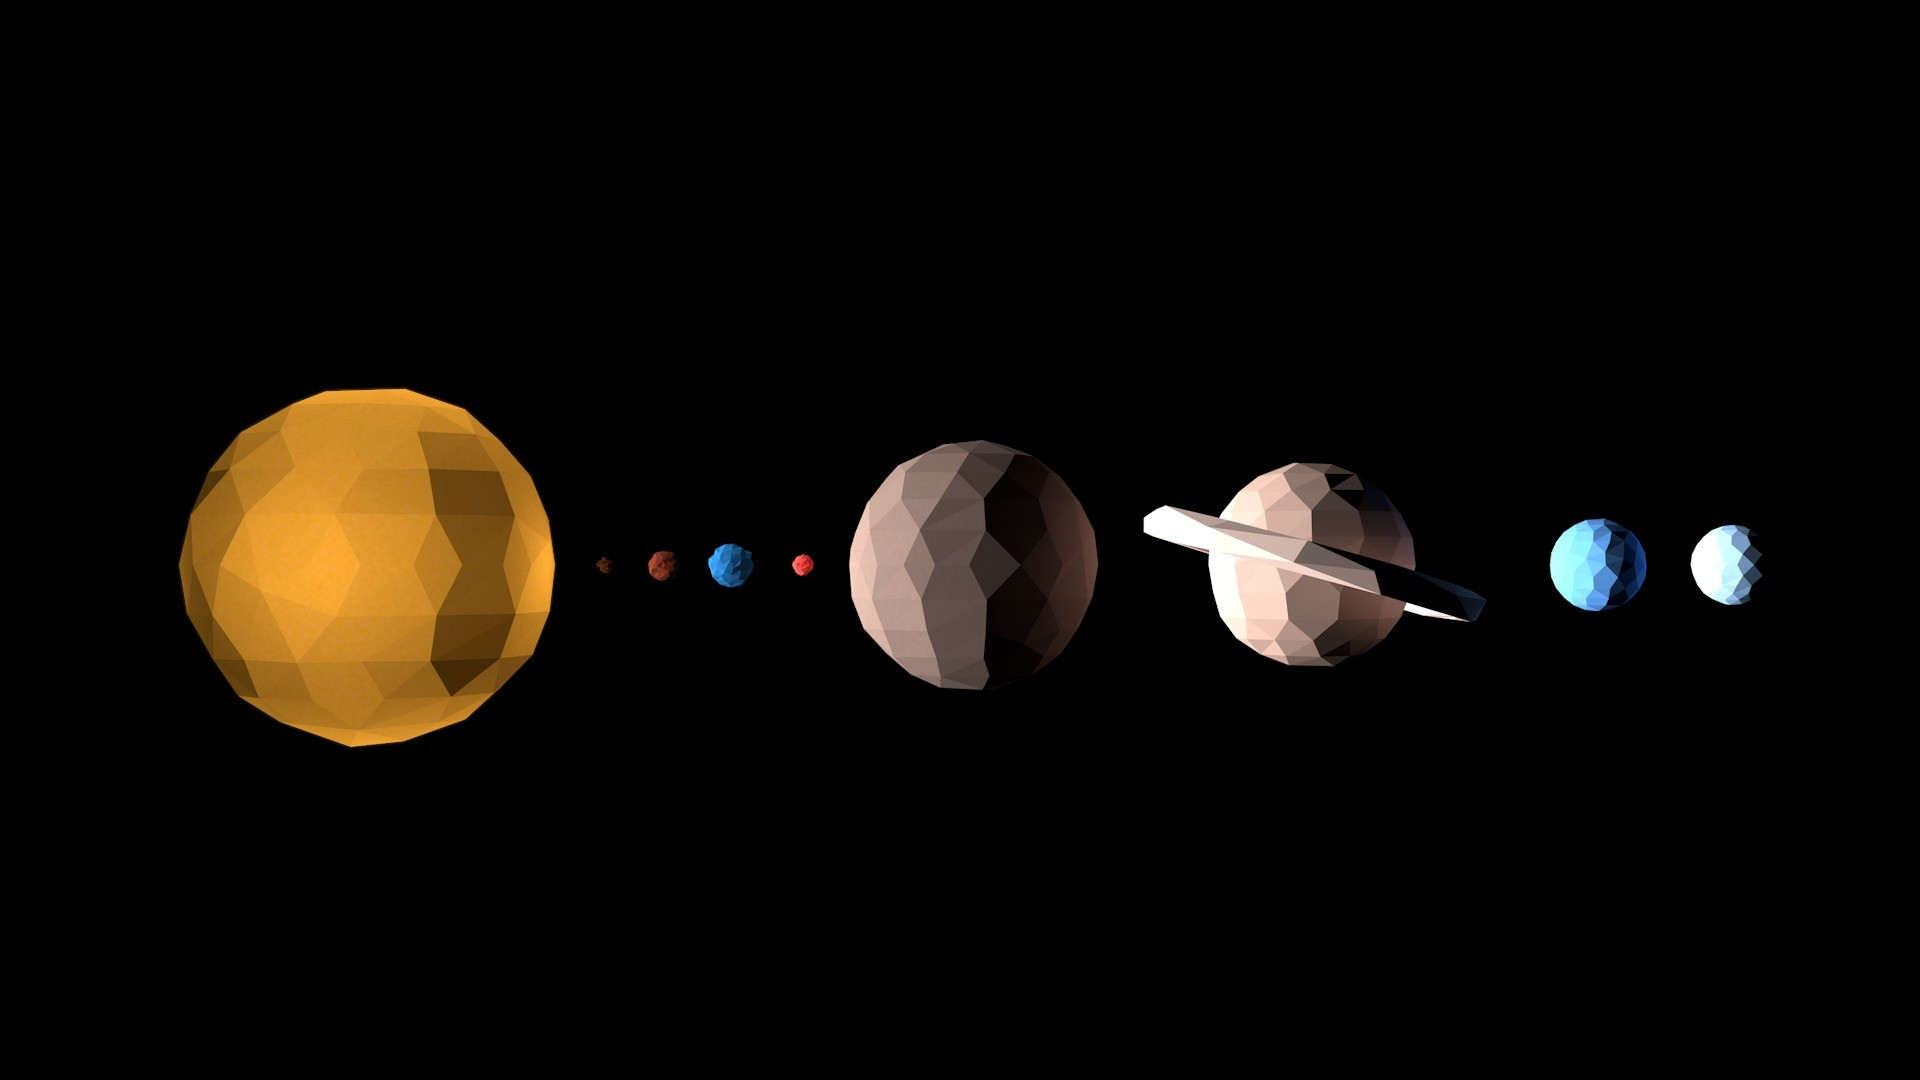 Solar system wallpaper 72 images - Solar system hd wallpapers 1080p ...